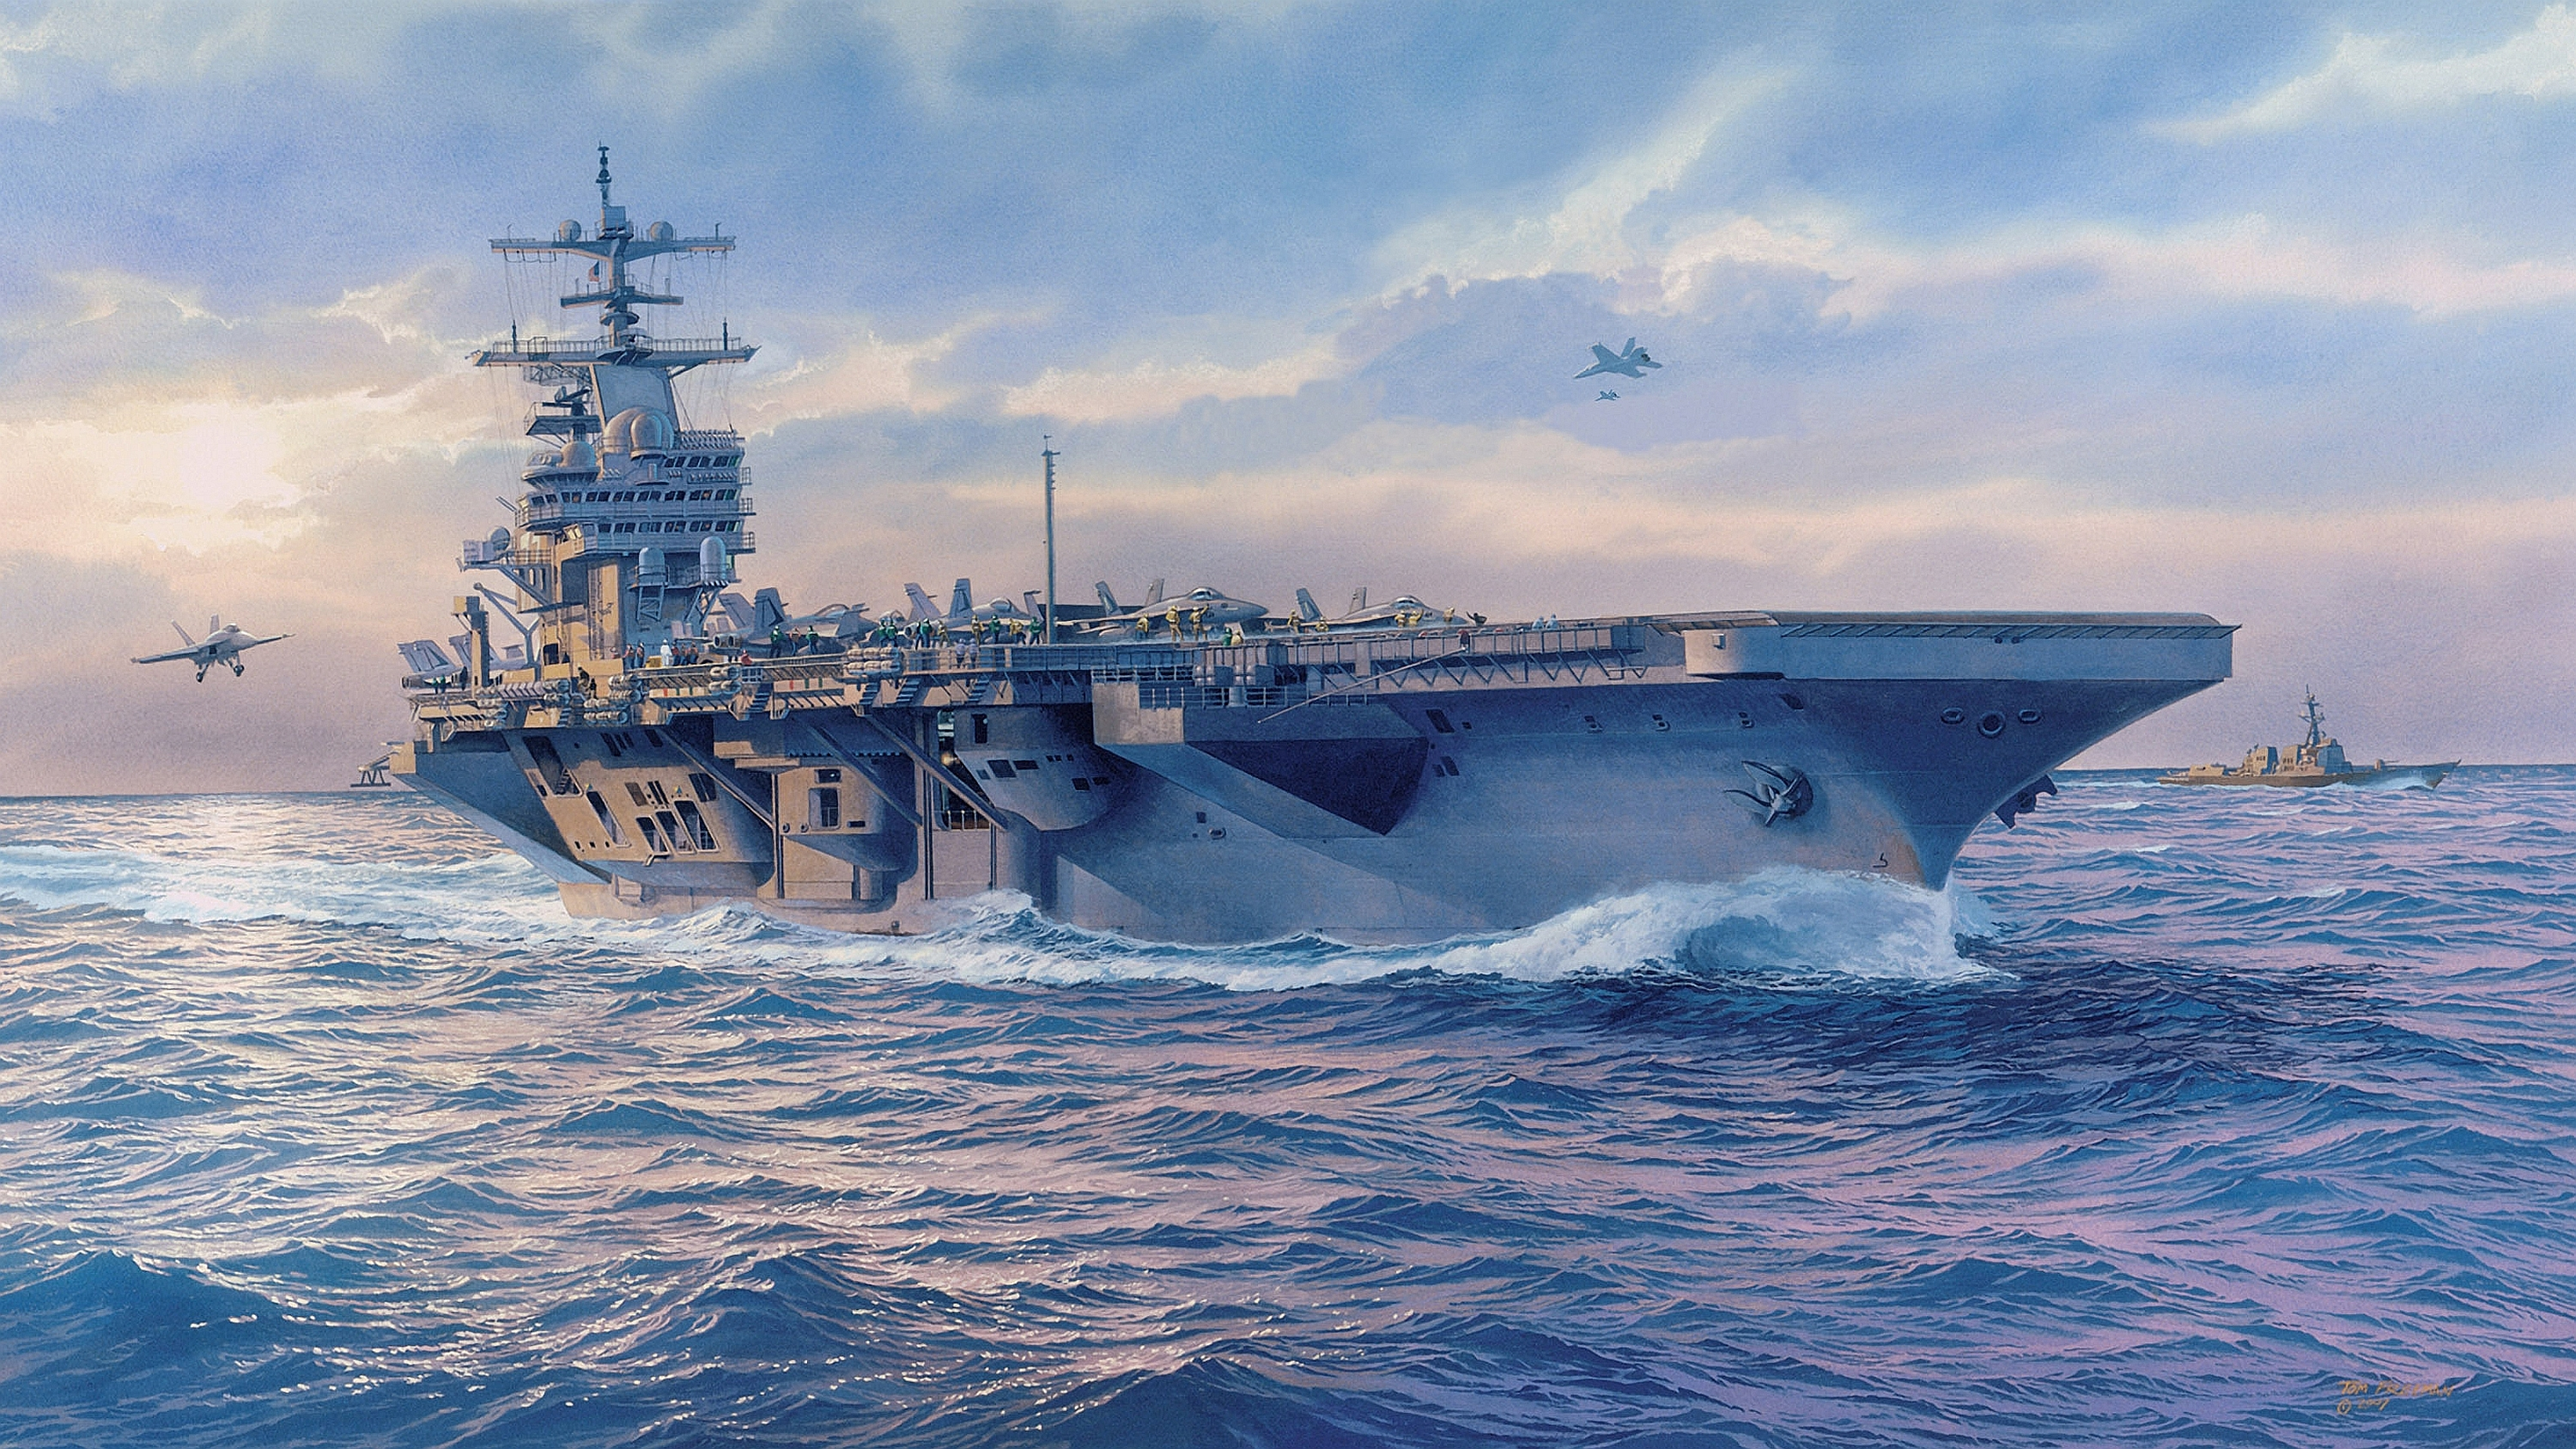 558 Warship Hd Wallpapers Background Images Wallpaper Abyss